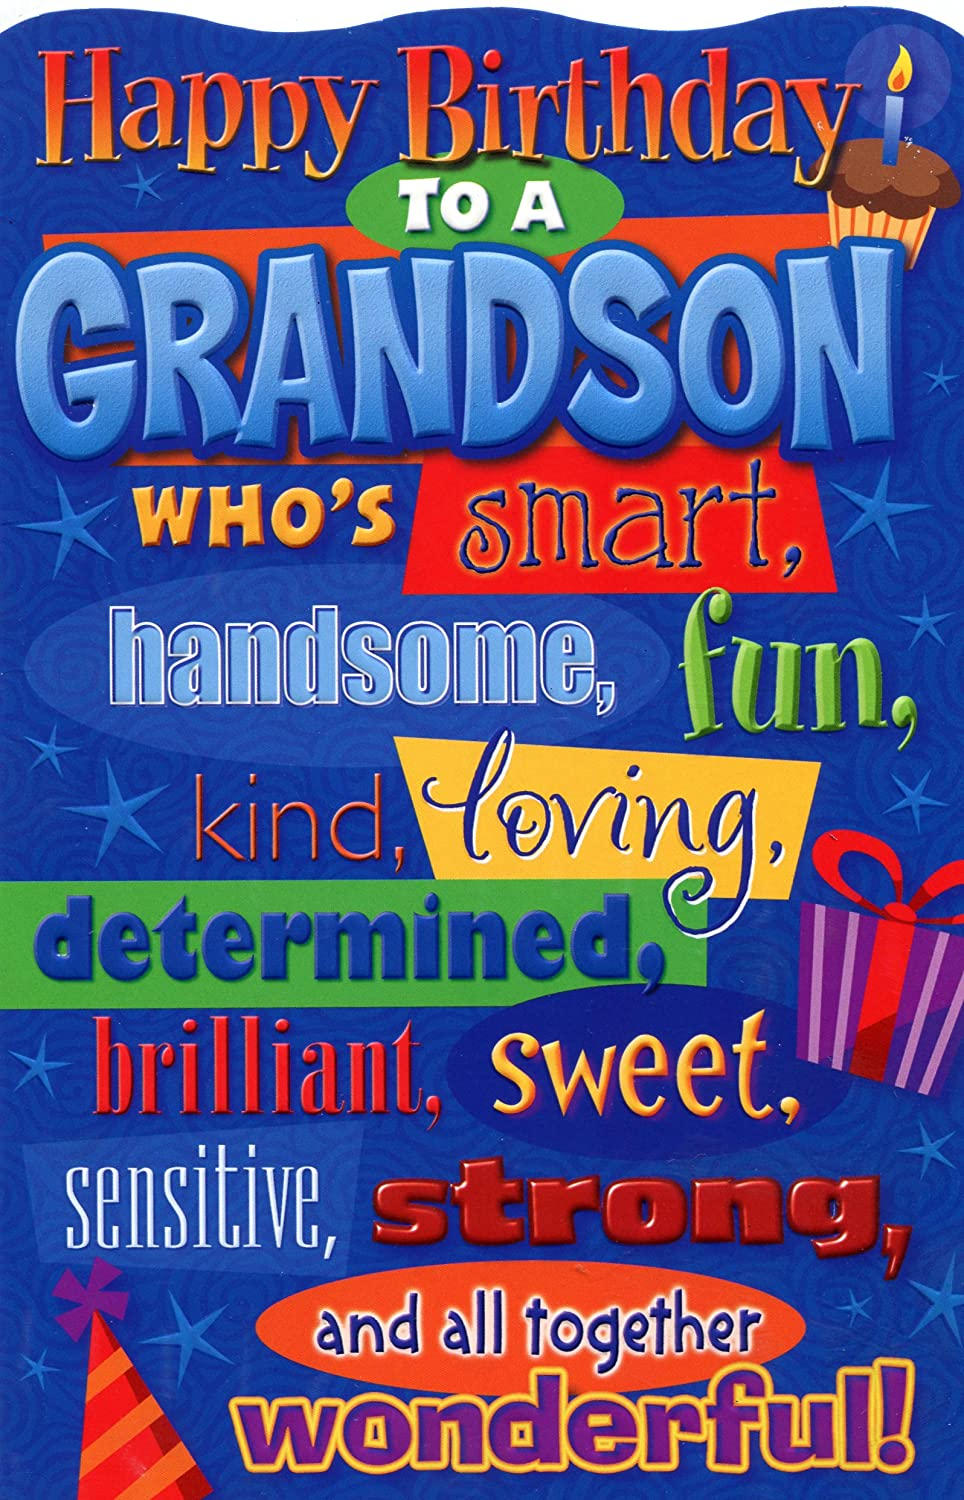 Amazon happy birthday grandson birthday greetings card amazon happy birthday grandson birthday greetings card office products m4hsunfo